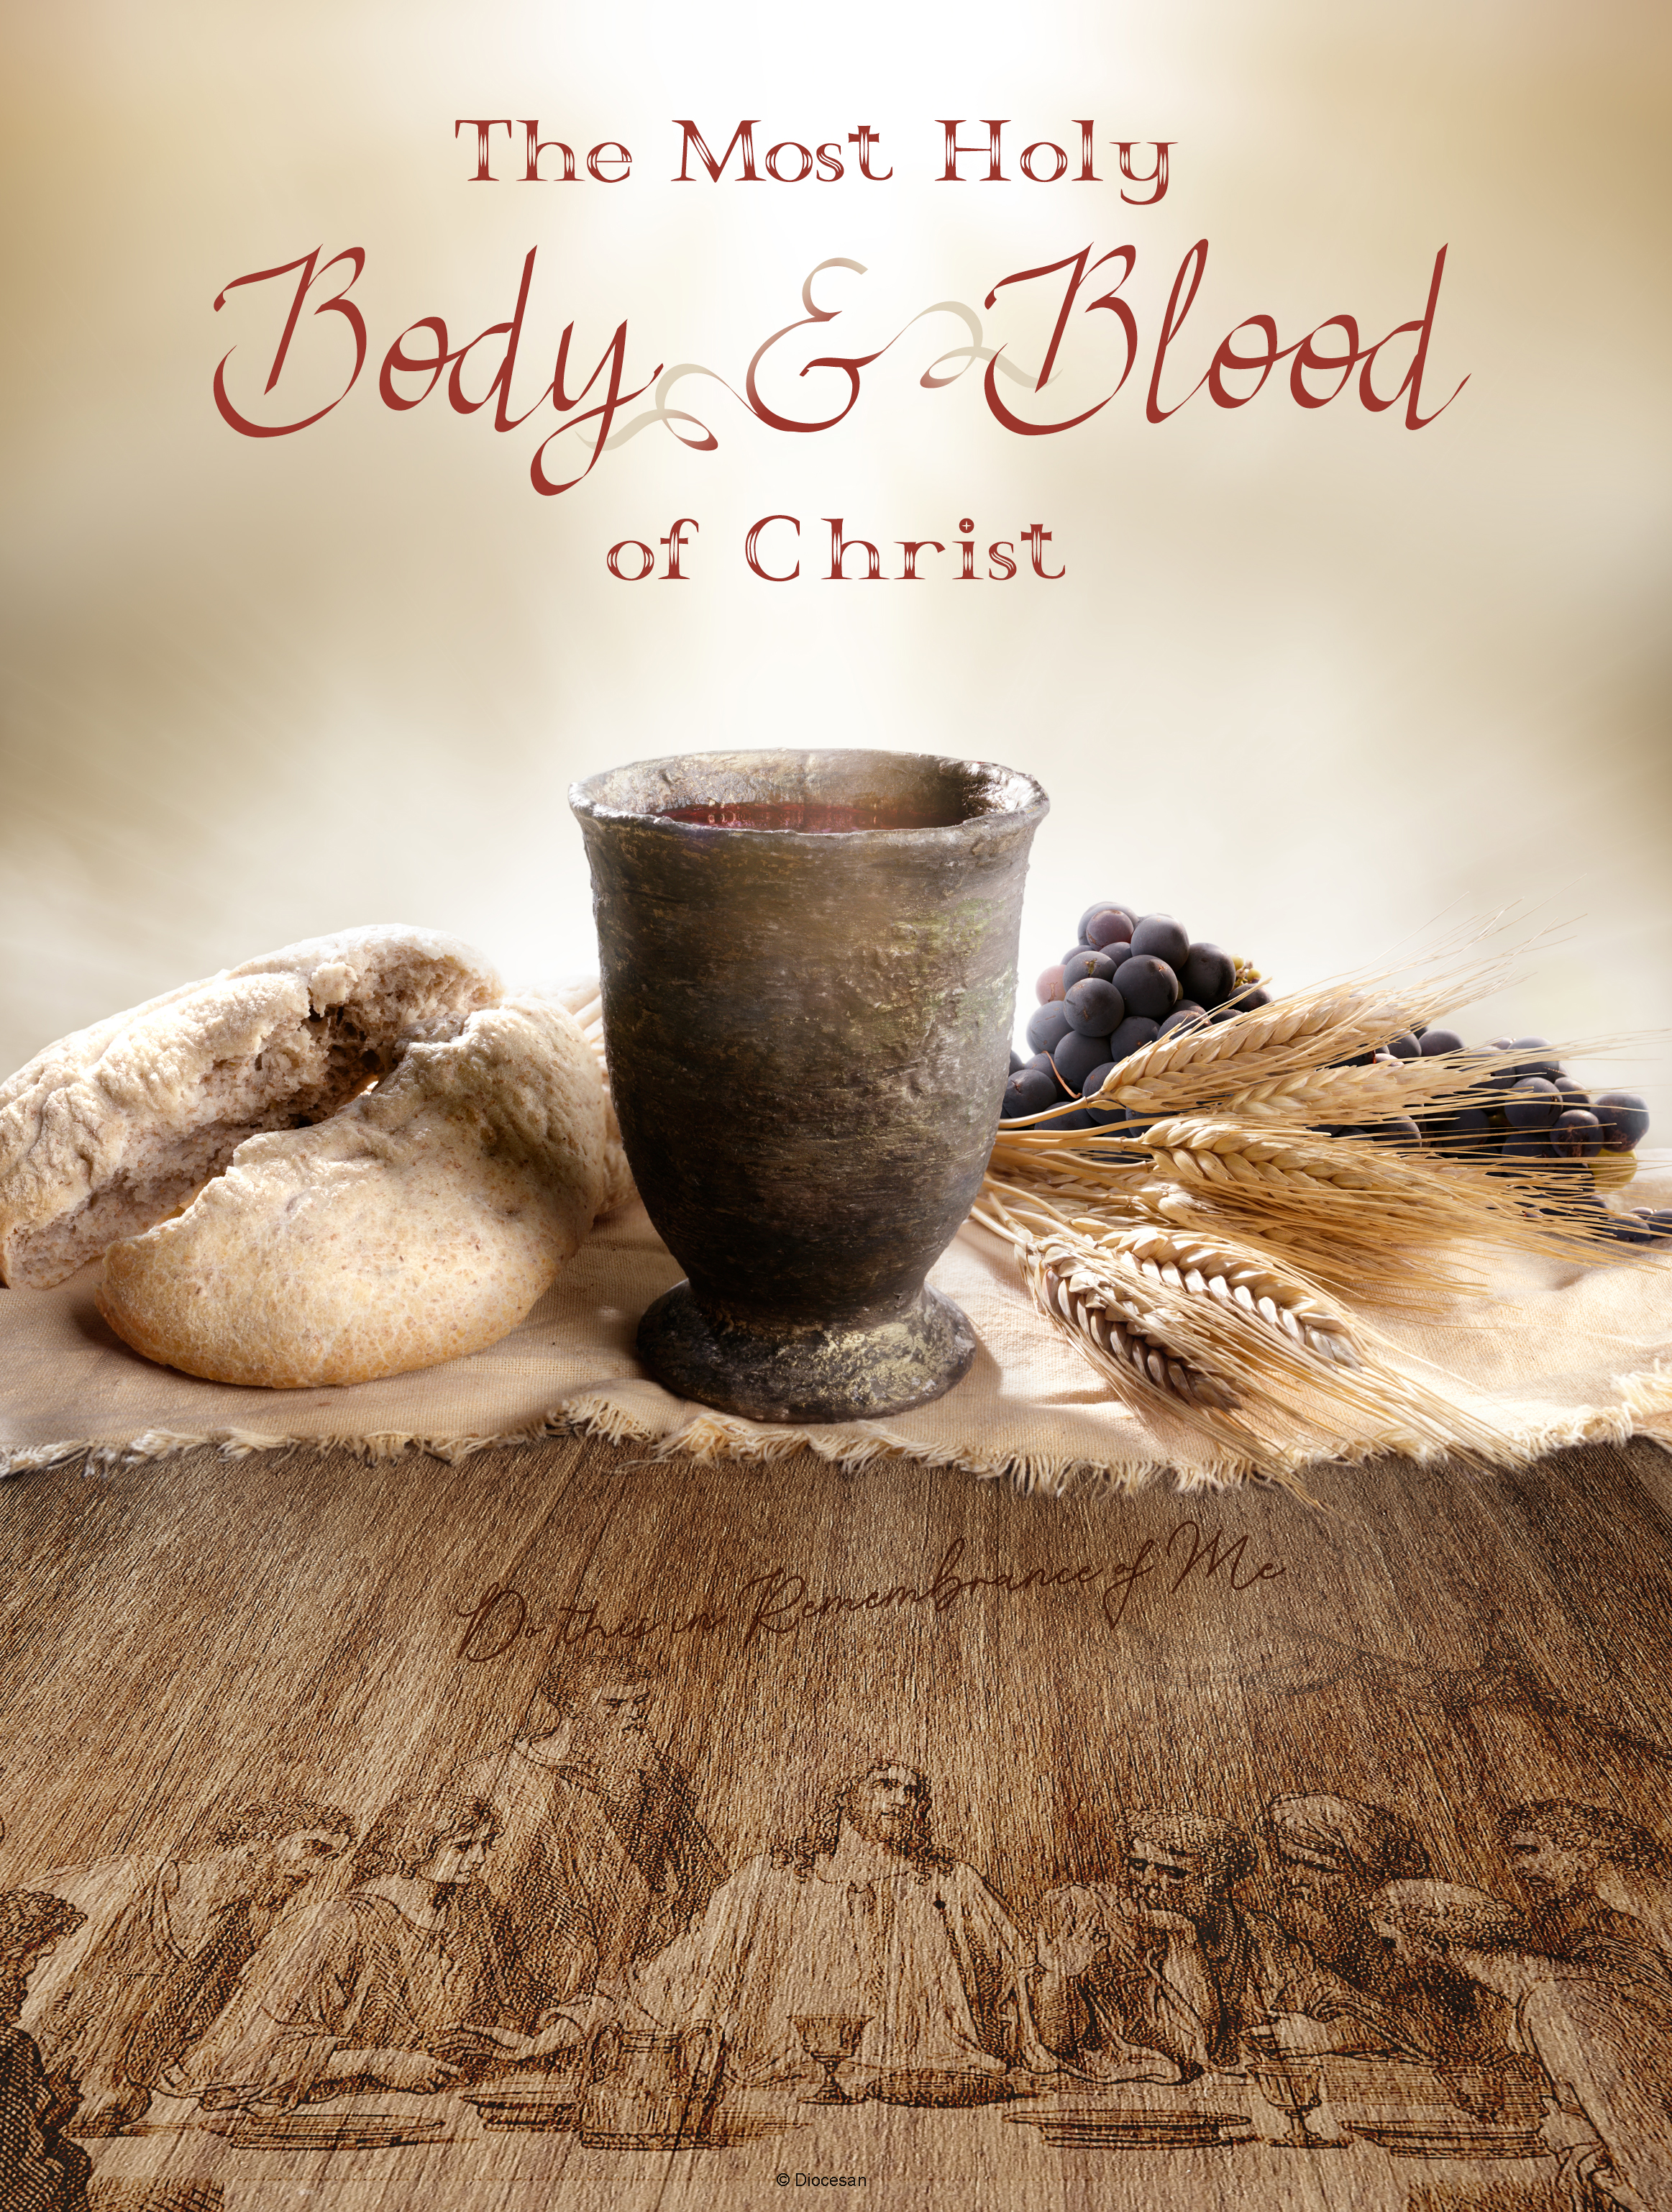 Body and Blood of Christ – Etched Wood – Diocesan